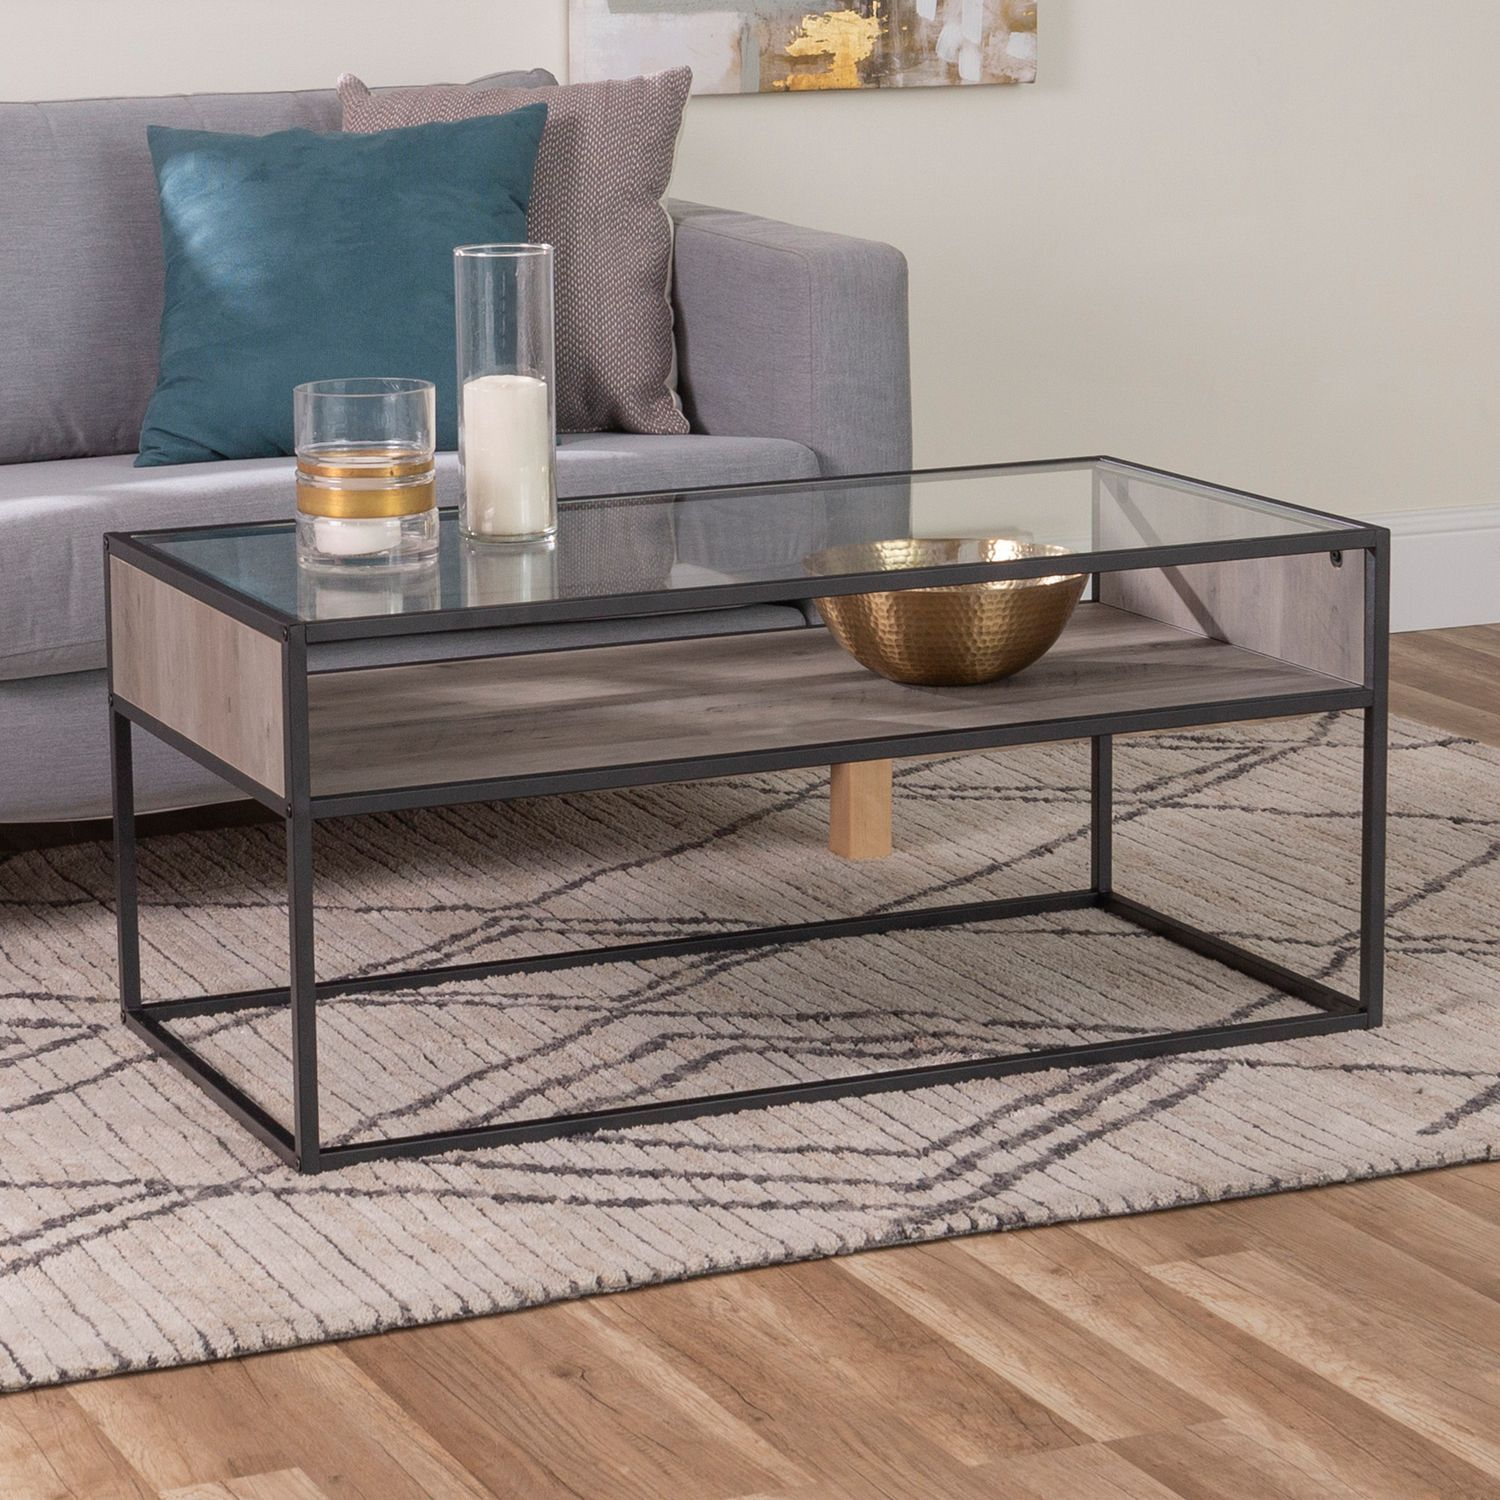 40 Gray Wash Metal Glass Coffee Table With Open Shelf Pier 1 Coffee Table Glass Coffee Table Round Glass Coffee Table [ 1500 x 1500 Pixel ]